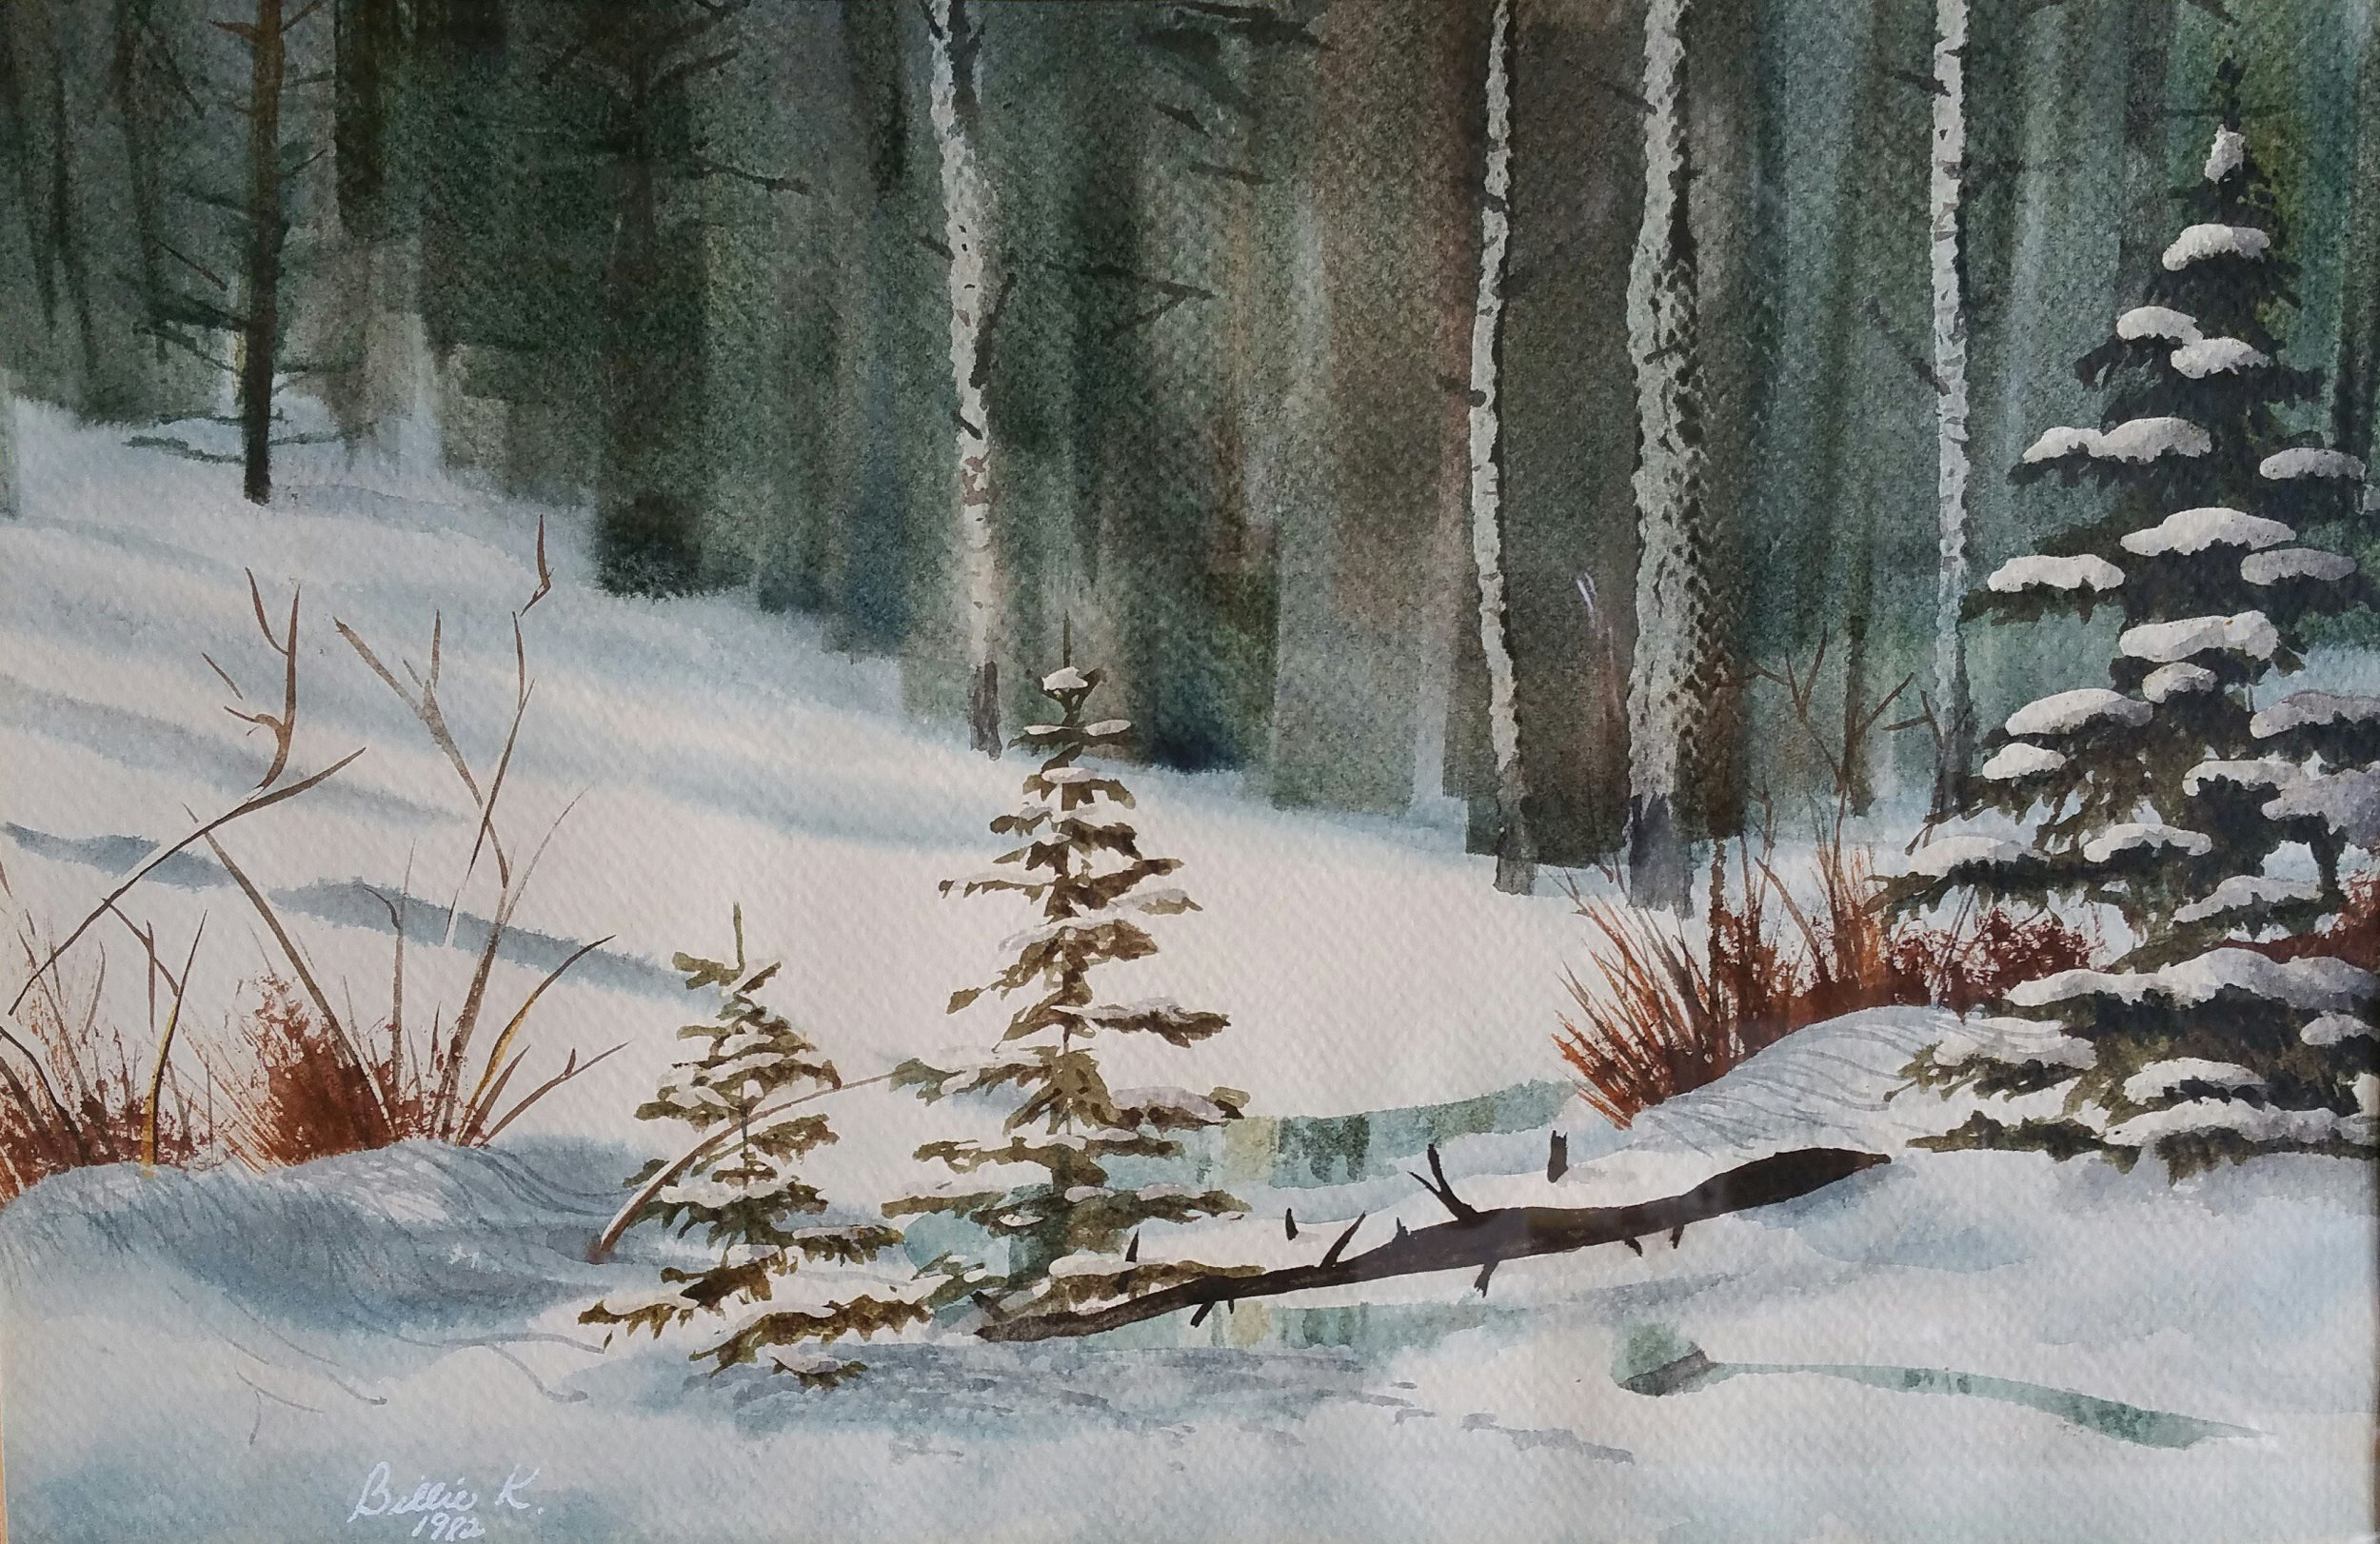 """Winter Dreams"" 11x17 watercolor by Billie Kay Gross"